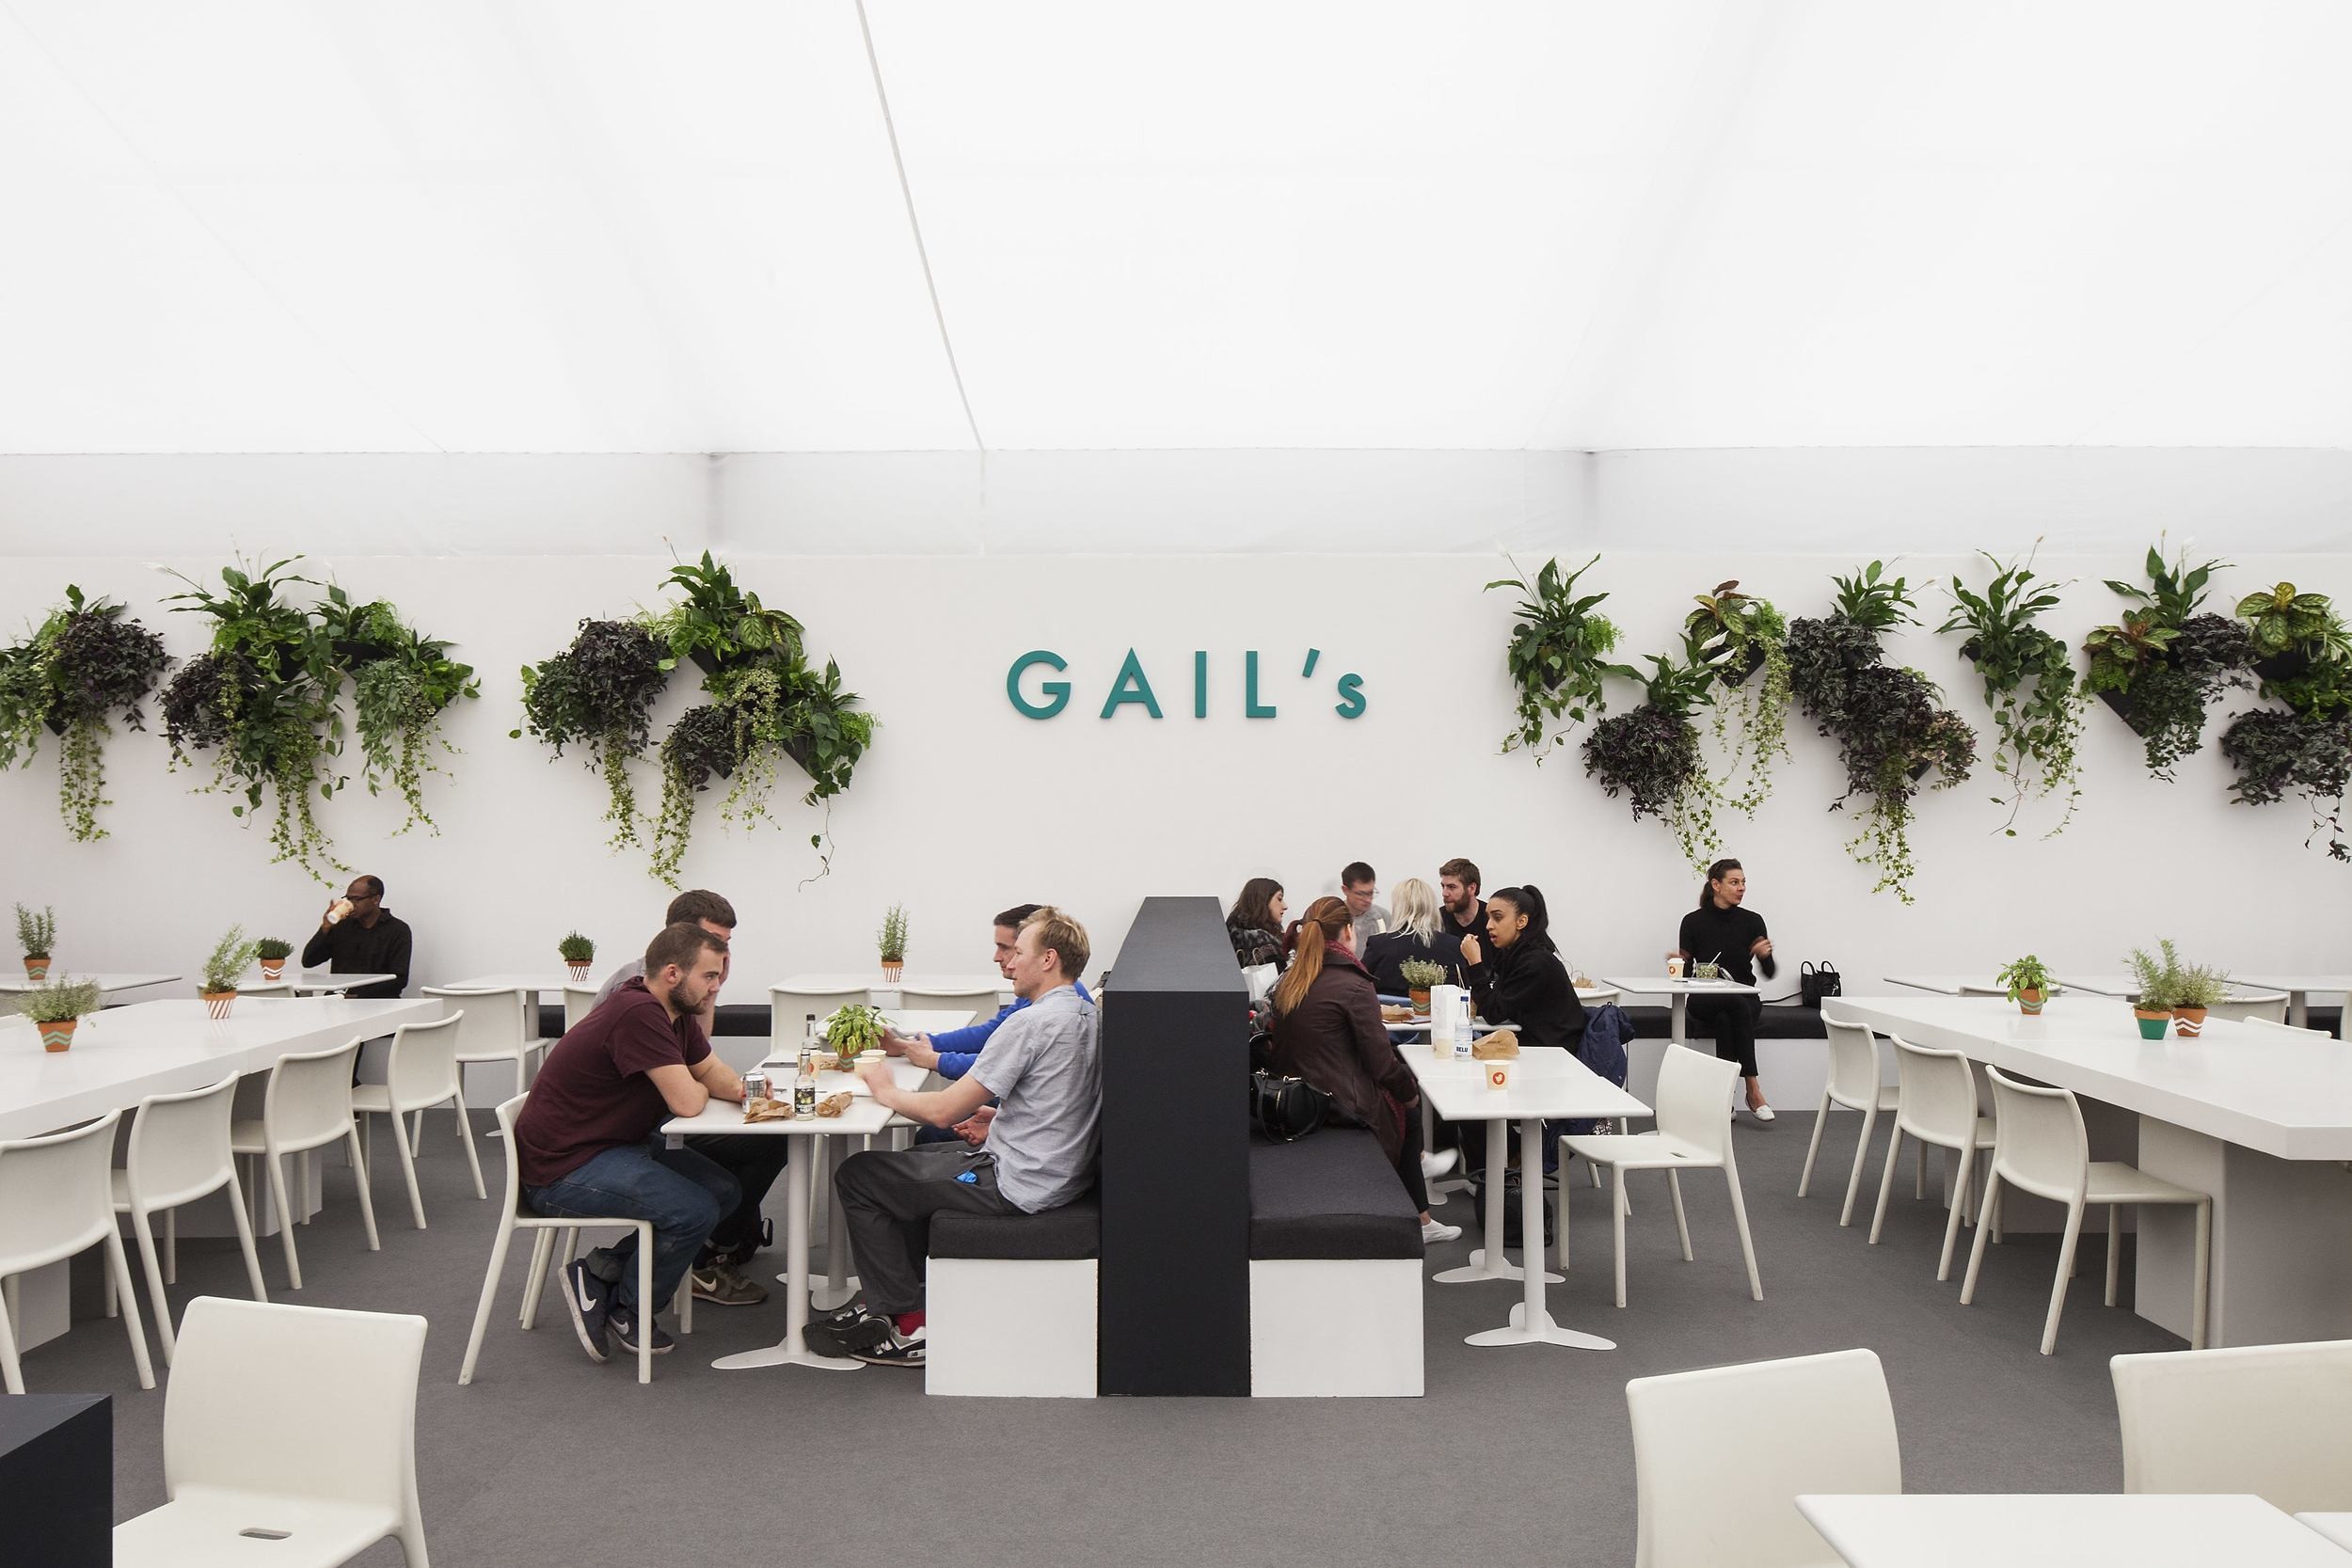 Banquettes & flowerpots for GAIL'S Artisan Bakery, at Frieze Art Fair, 2015